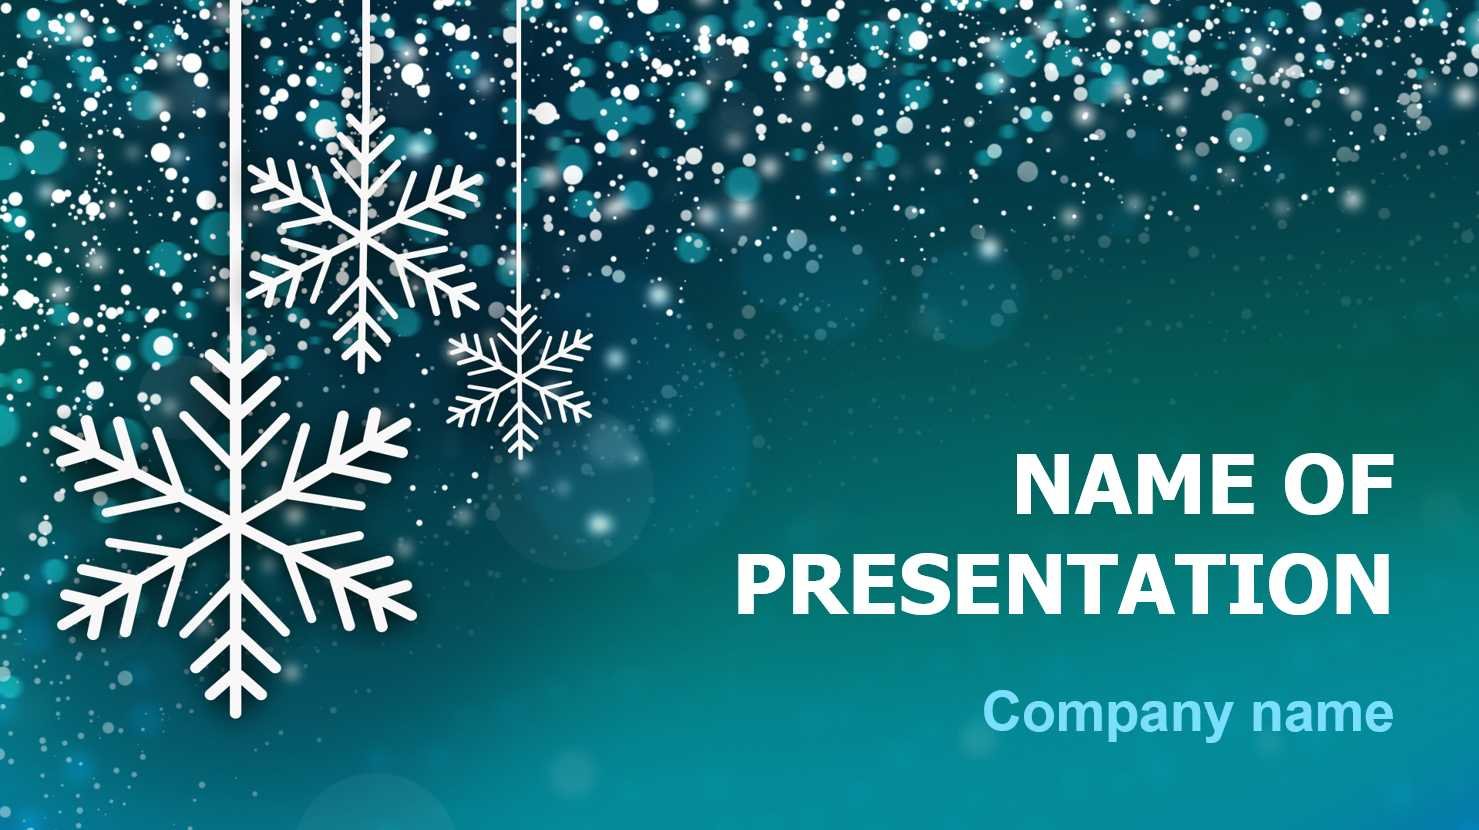 Download Free Snowing Snow Powerpoint Theme For Presentation For Snow Powerpoint Template